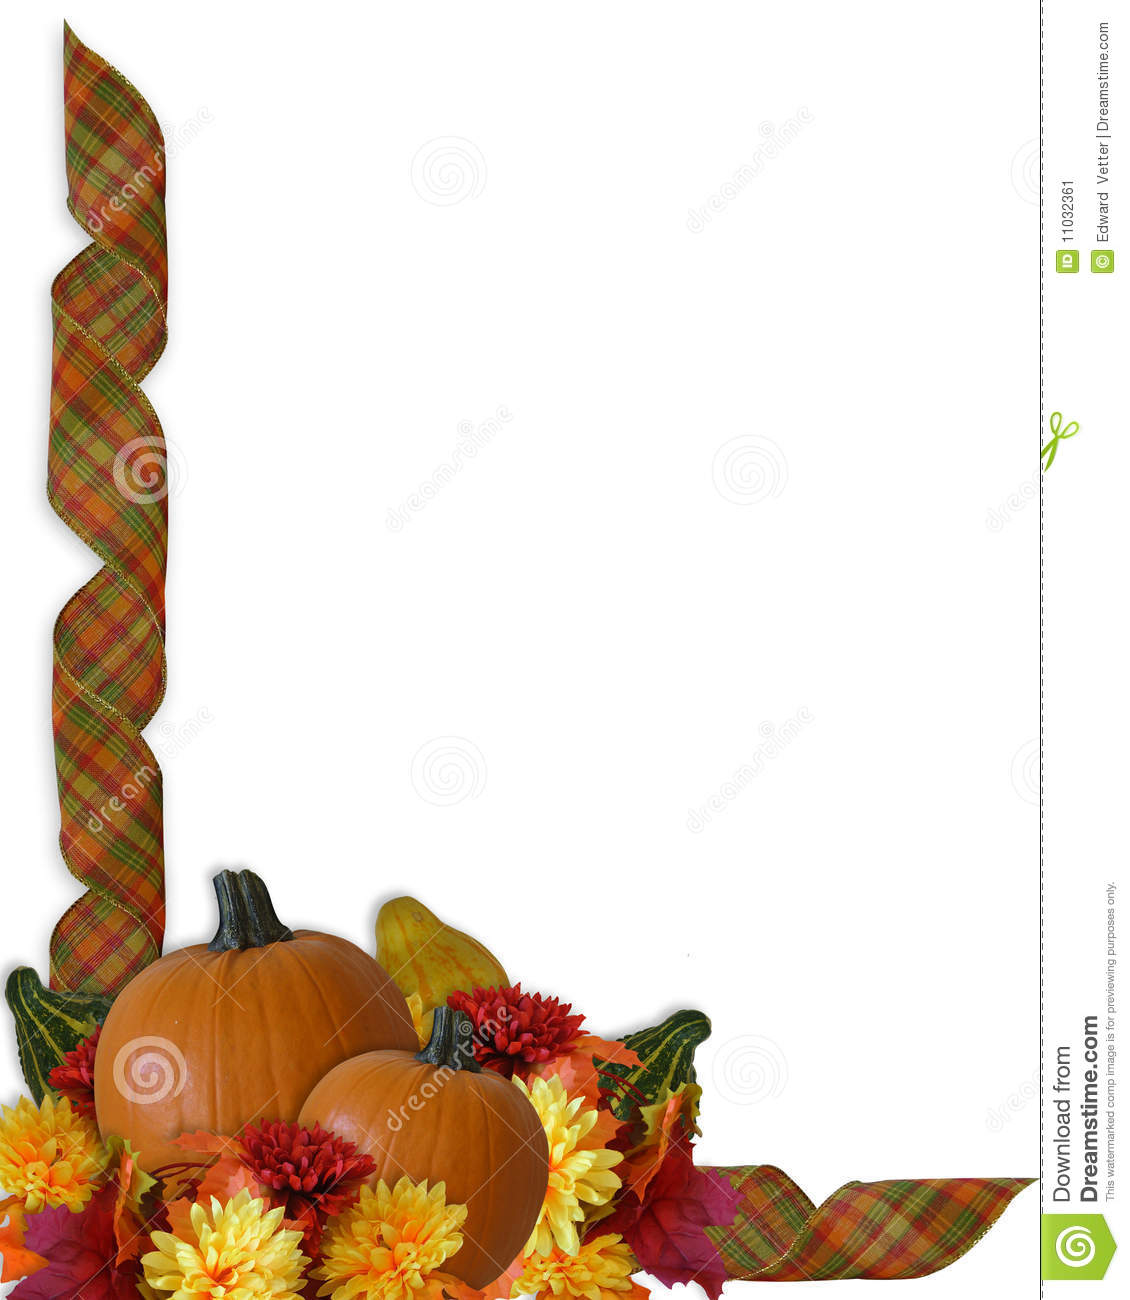 Free Online Architecture Design Thanksgiving Autumn Fall Ribbons Border Stock Image